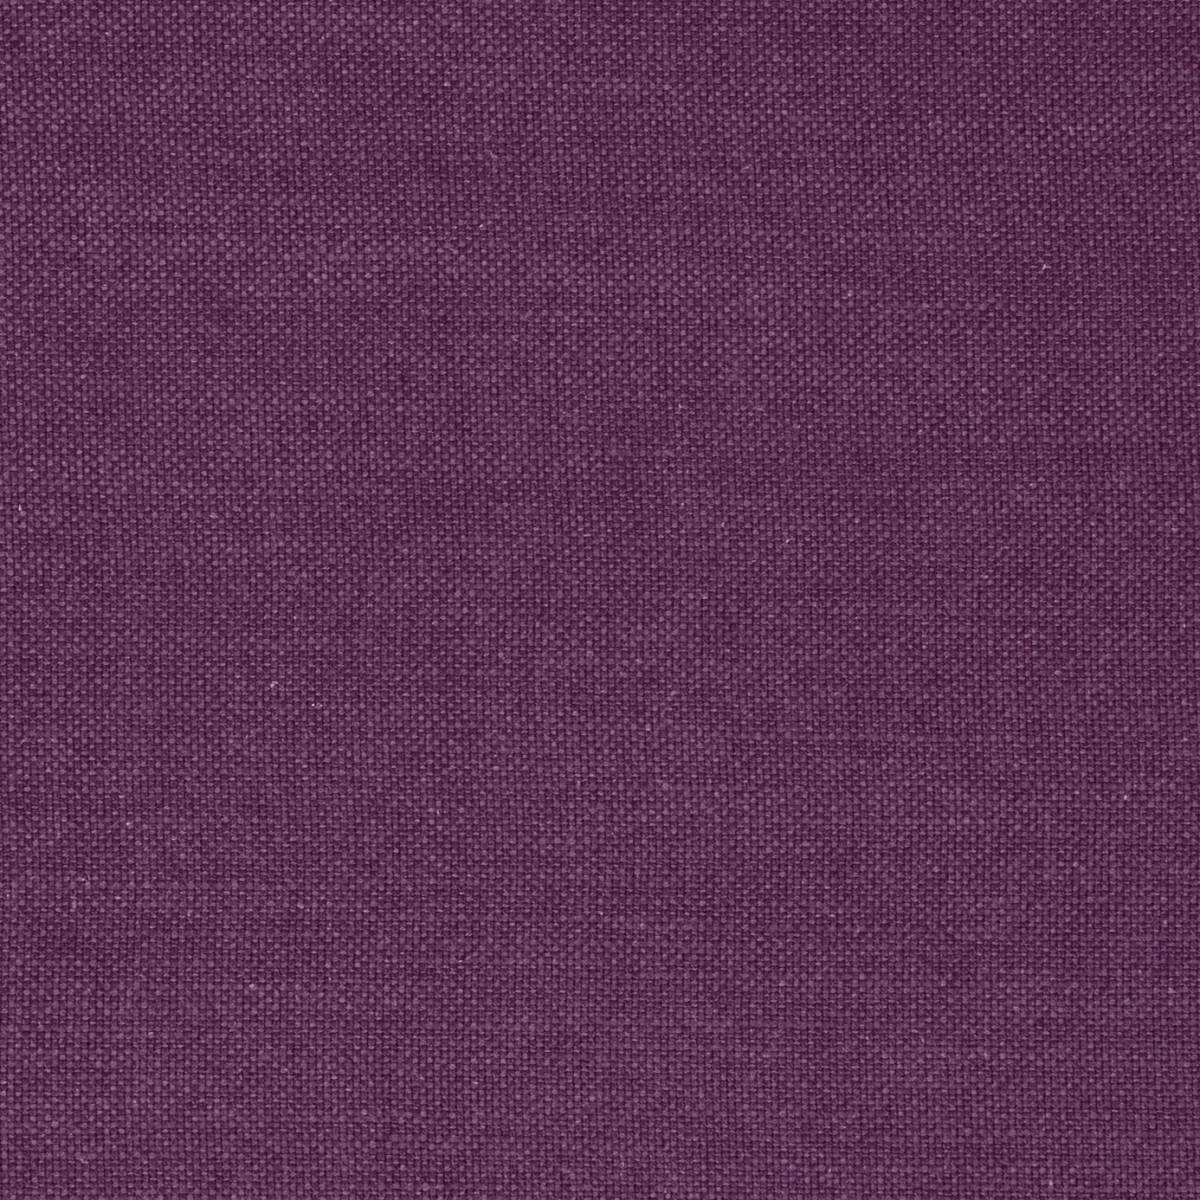 Nantucket fabric violet f0594 55 clarke clarke for Decor 55 fabric